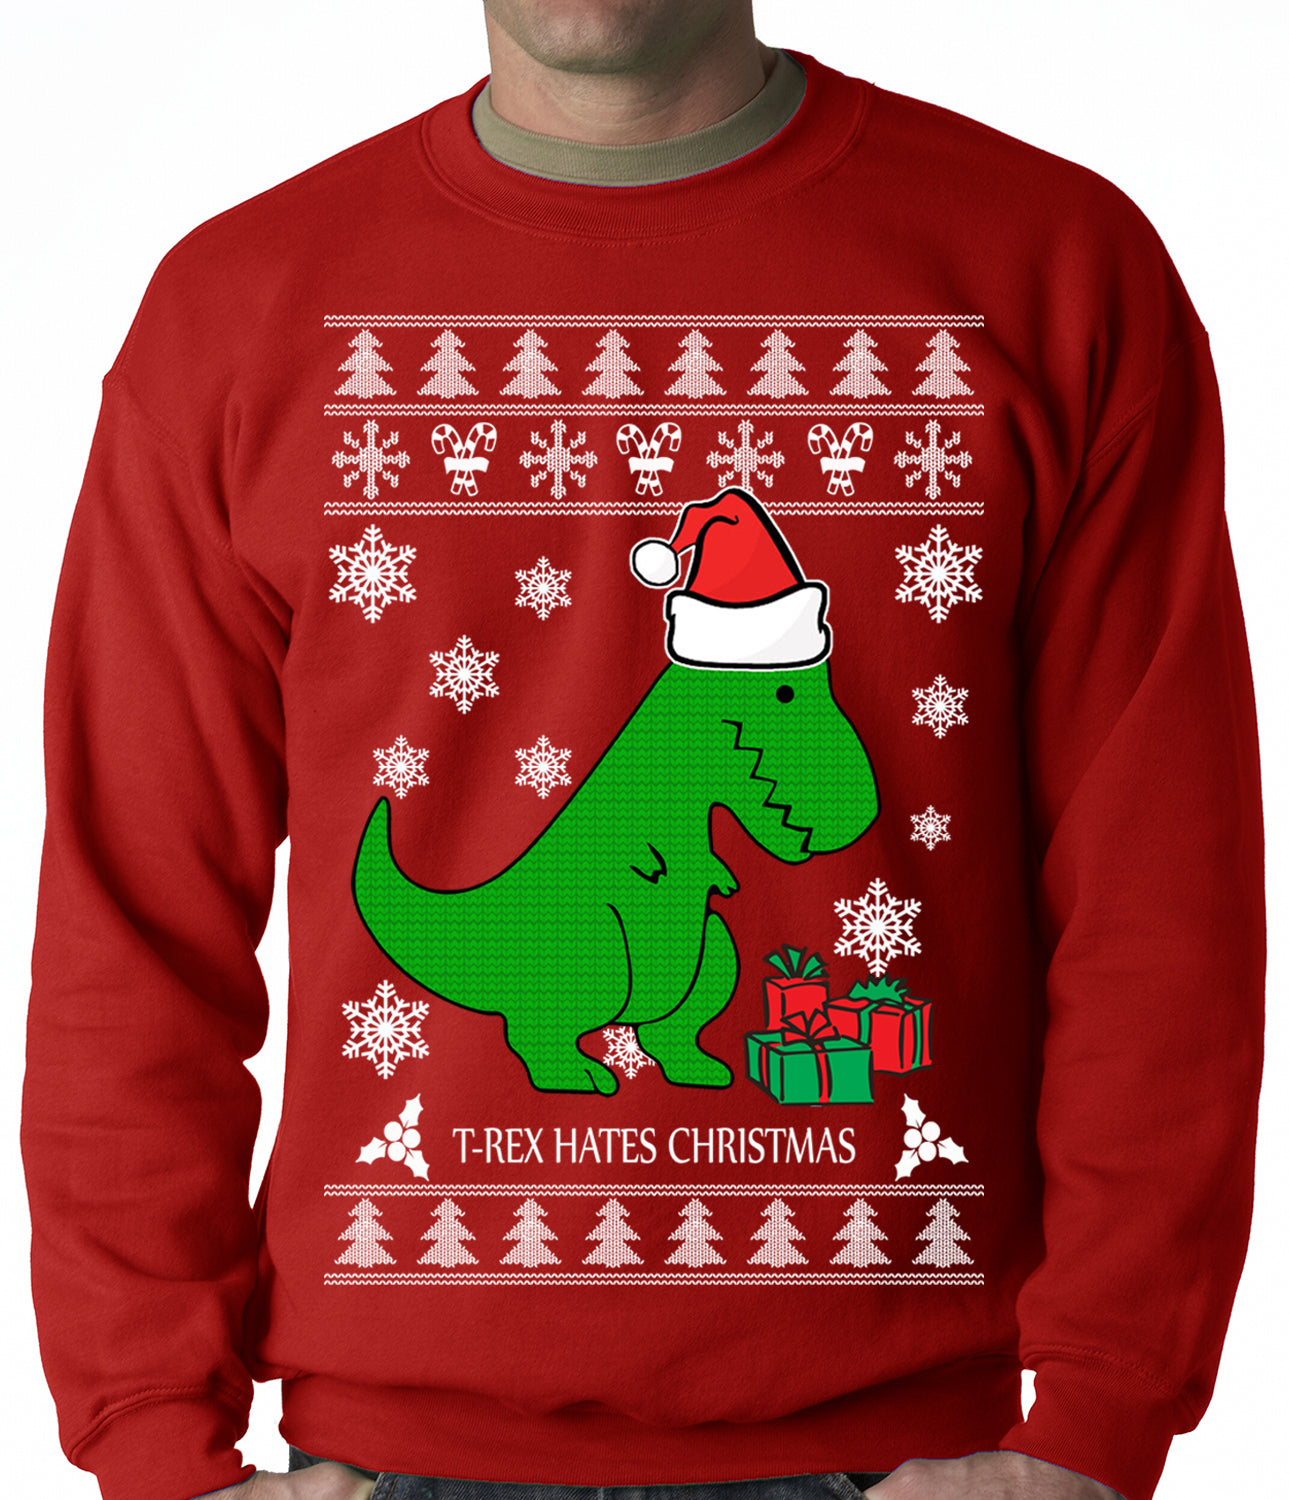 T Rex Ugly Christmas Sweater.T Rex Hates Christmas Ugly Christmas Sweater Adult Crewneck Sweatshirt